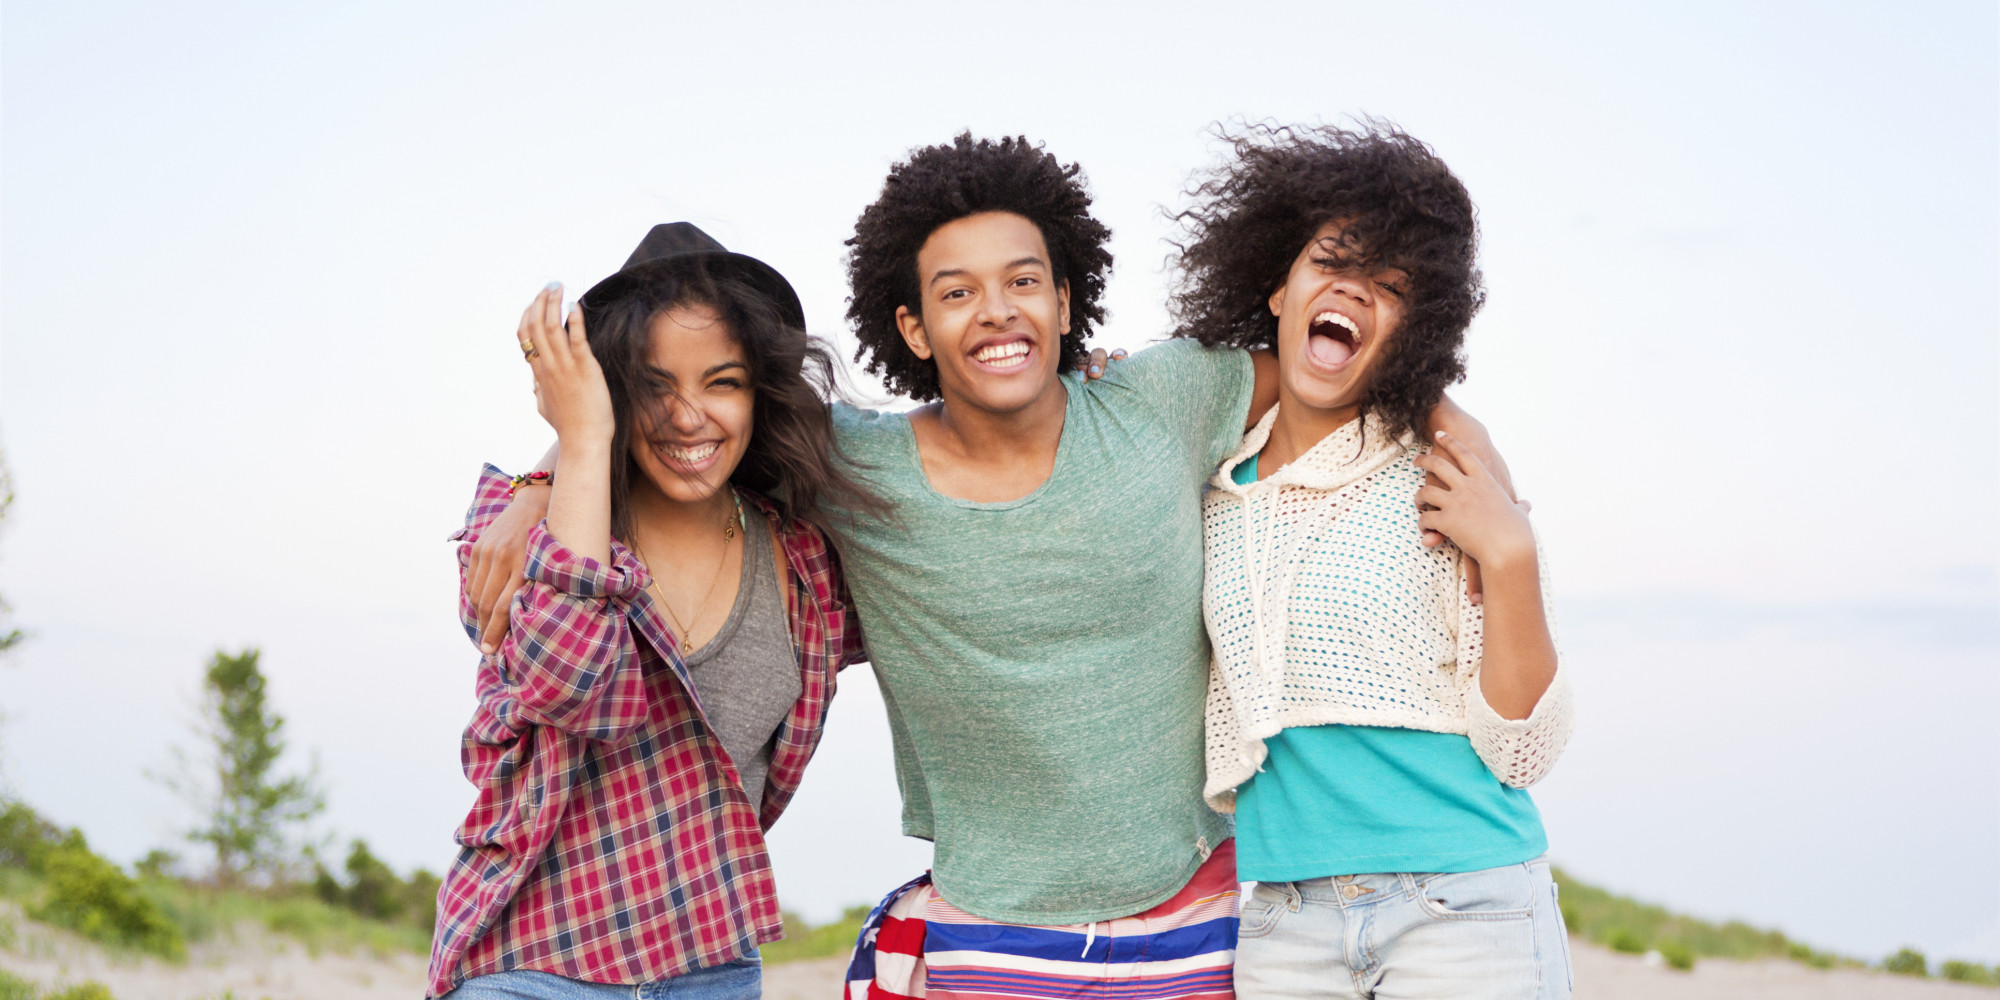 people-black-adolescent-black-teens